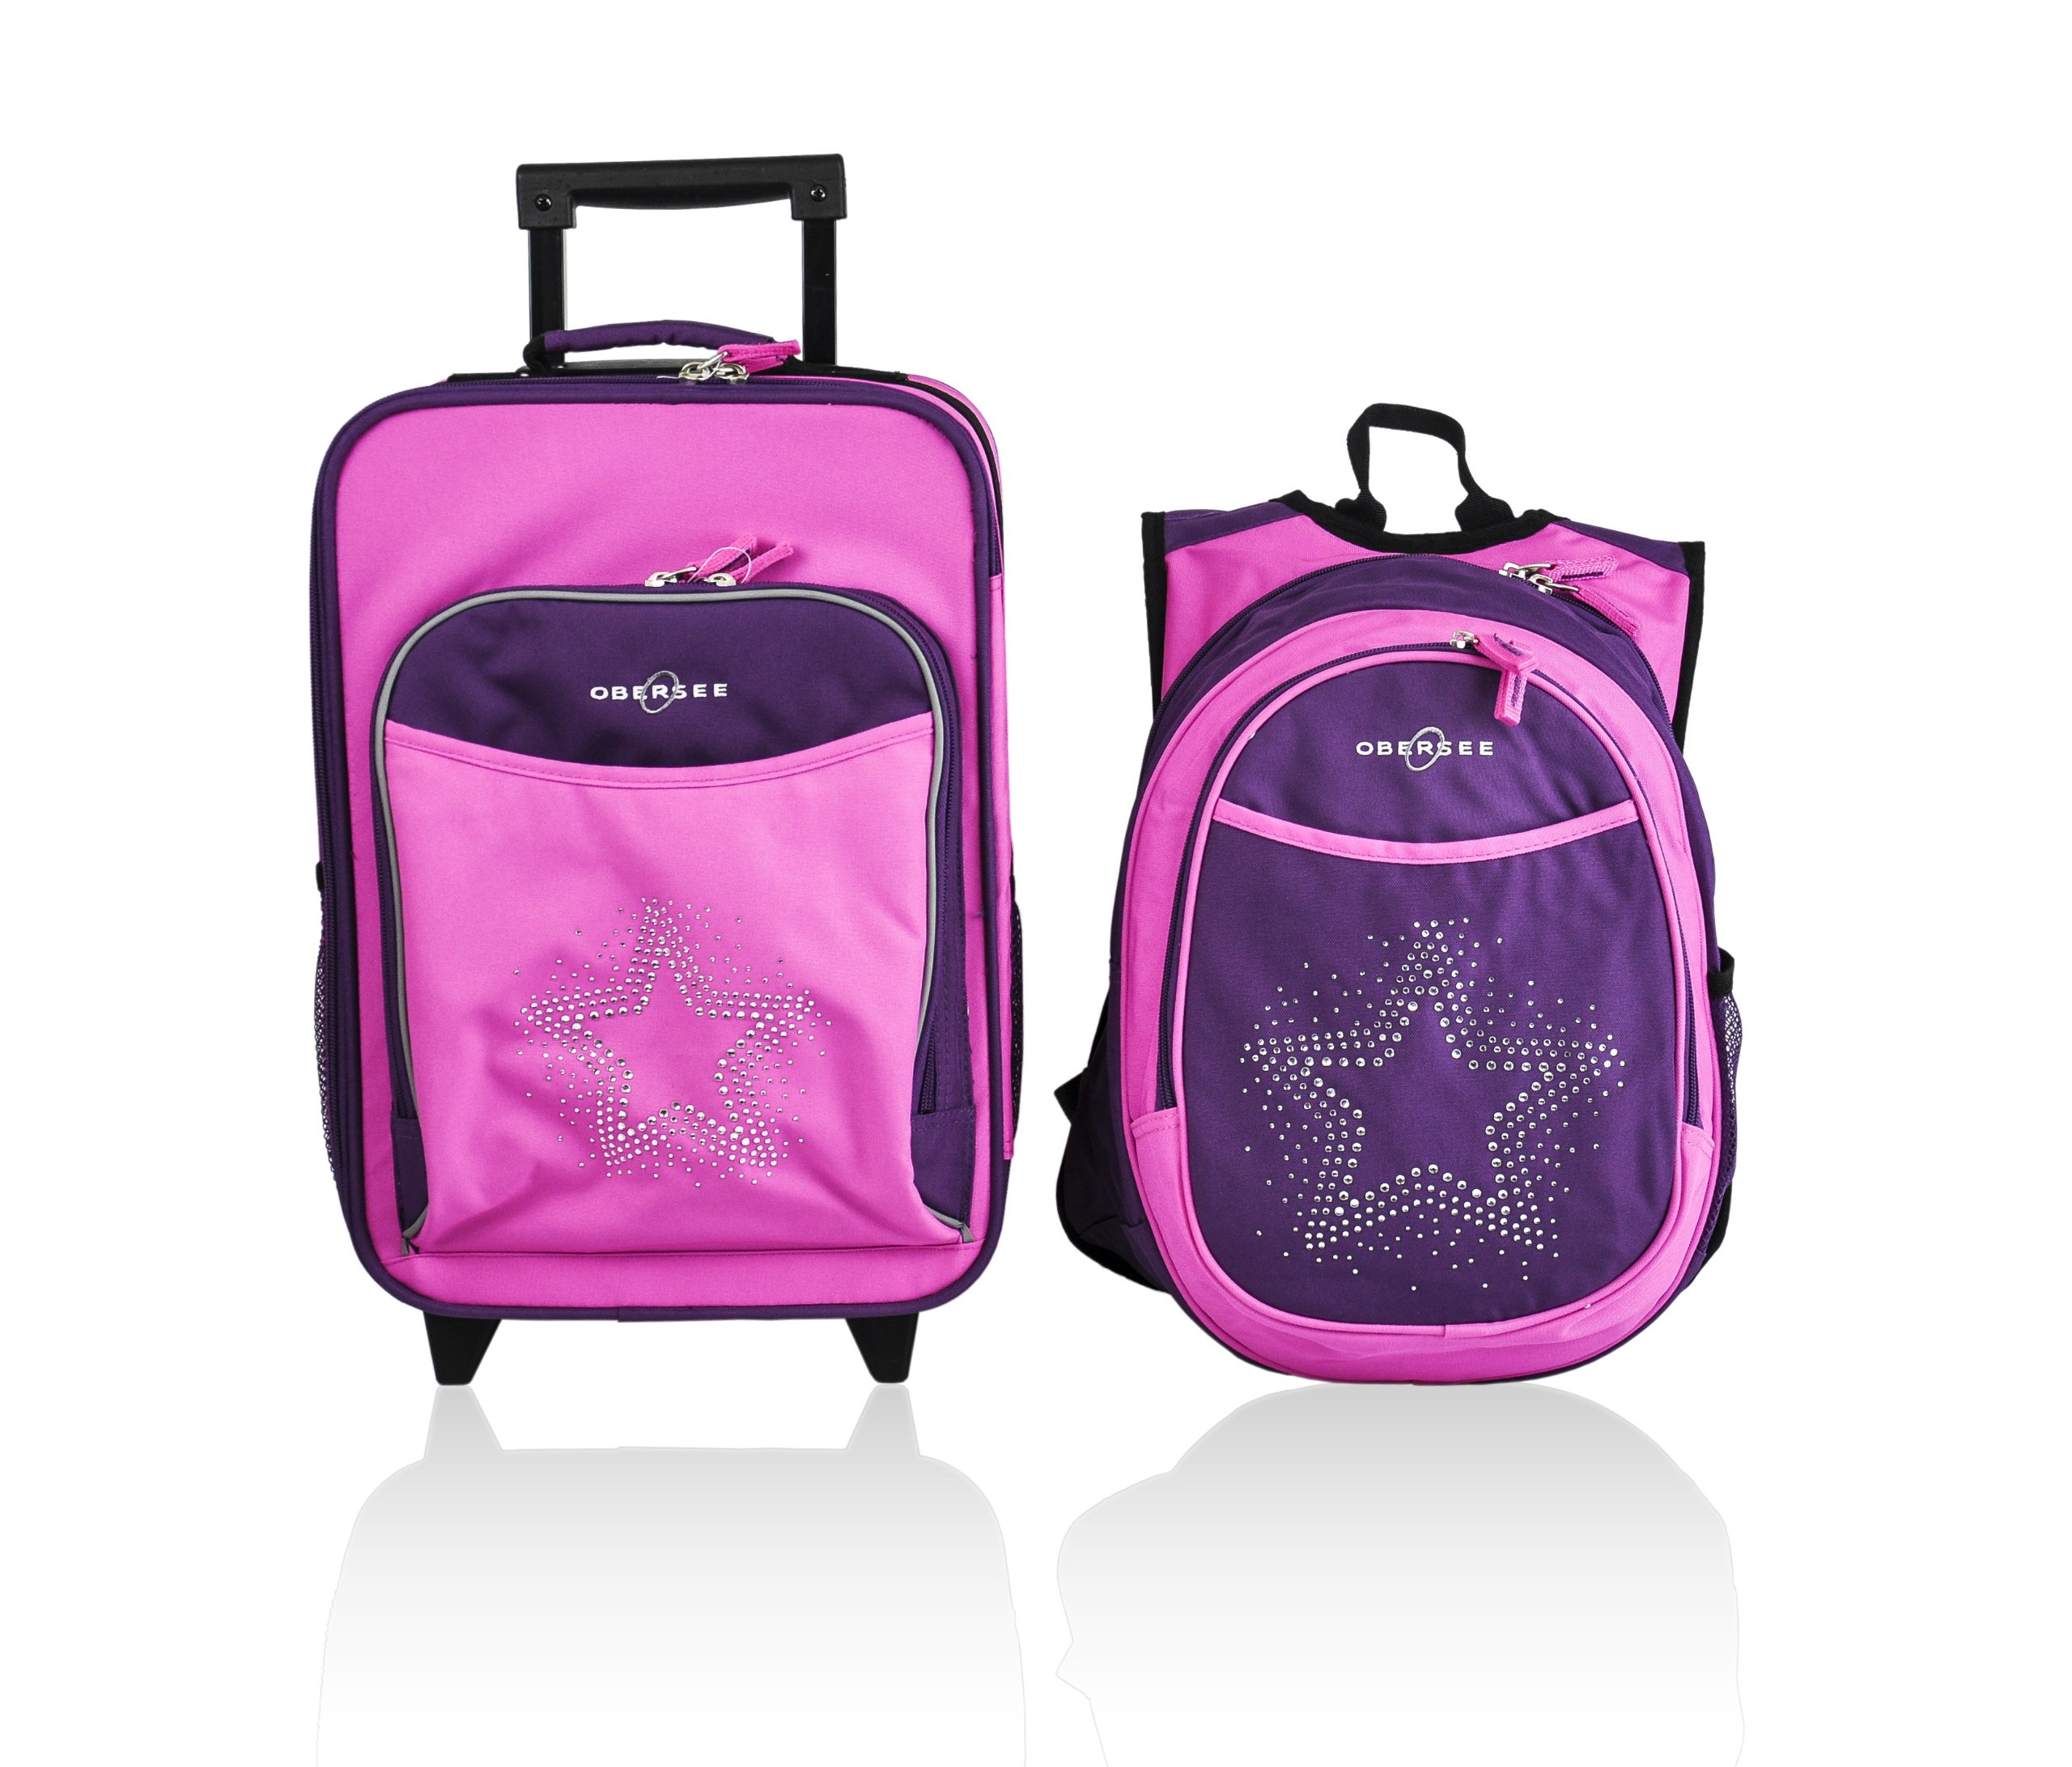 Amazon.com: Obersee Kids Luggage and Backpack with